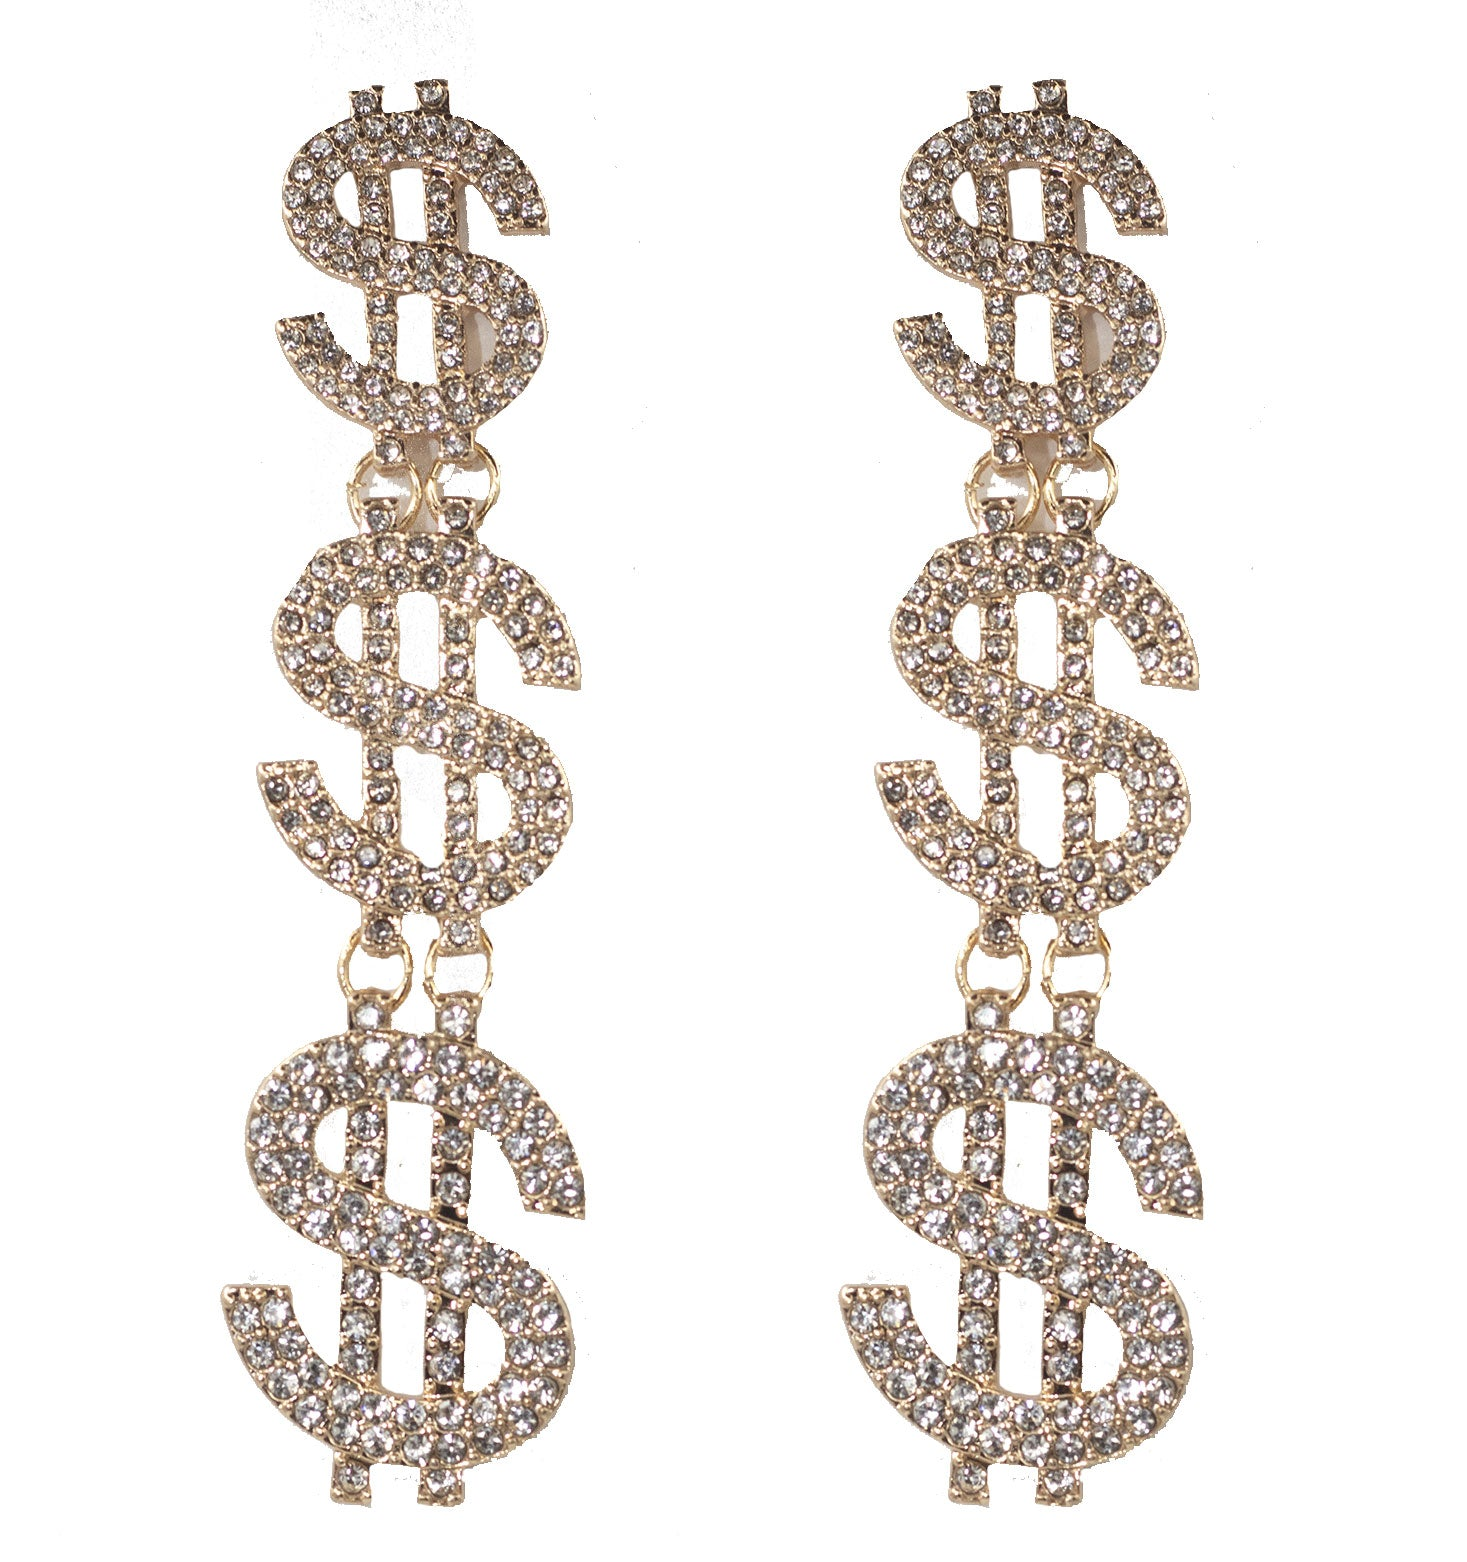 C Note Earrings - filthy-rich-vision